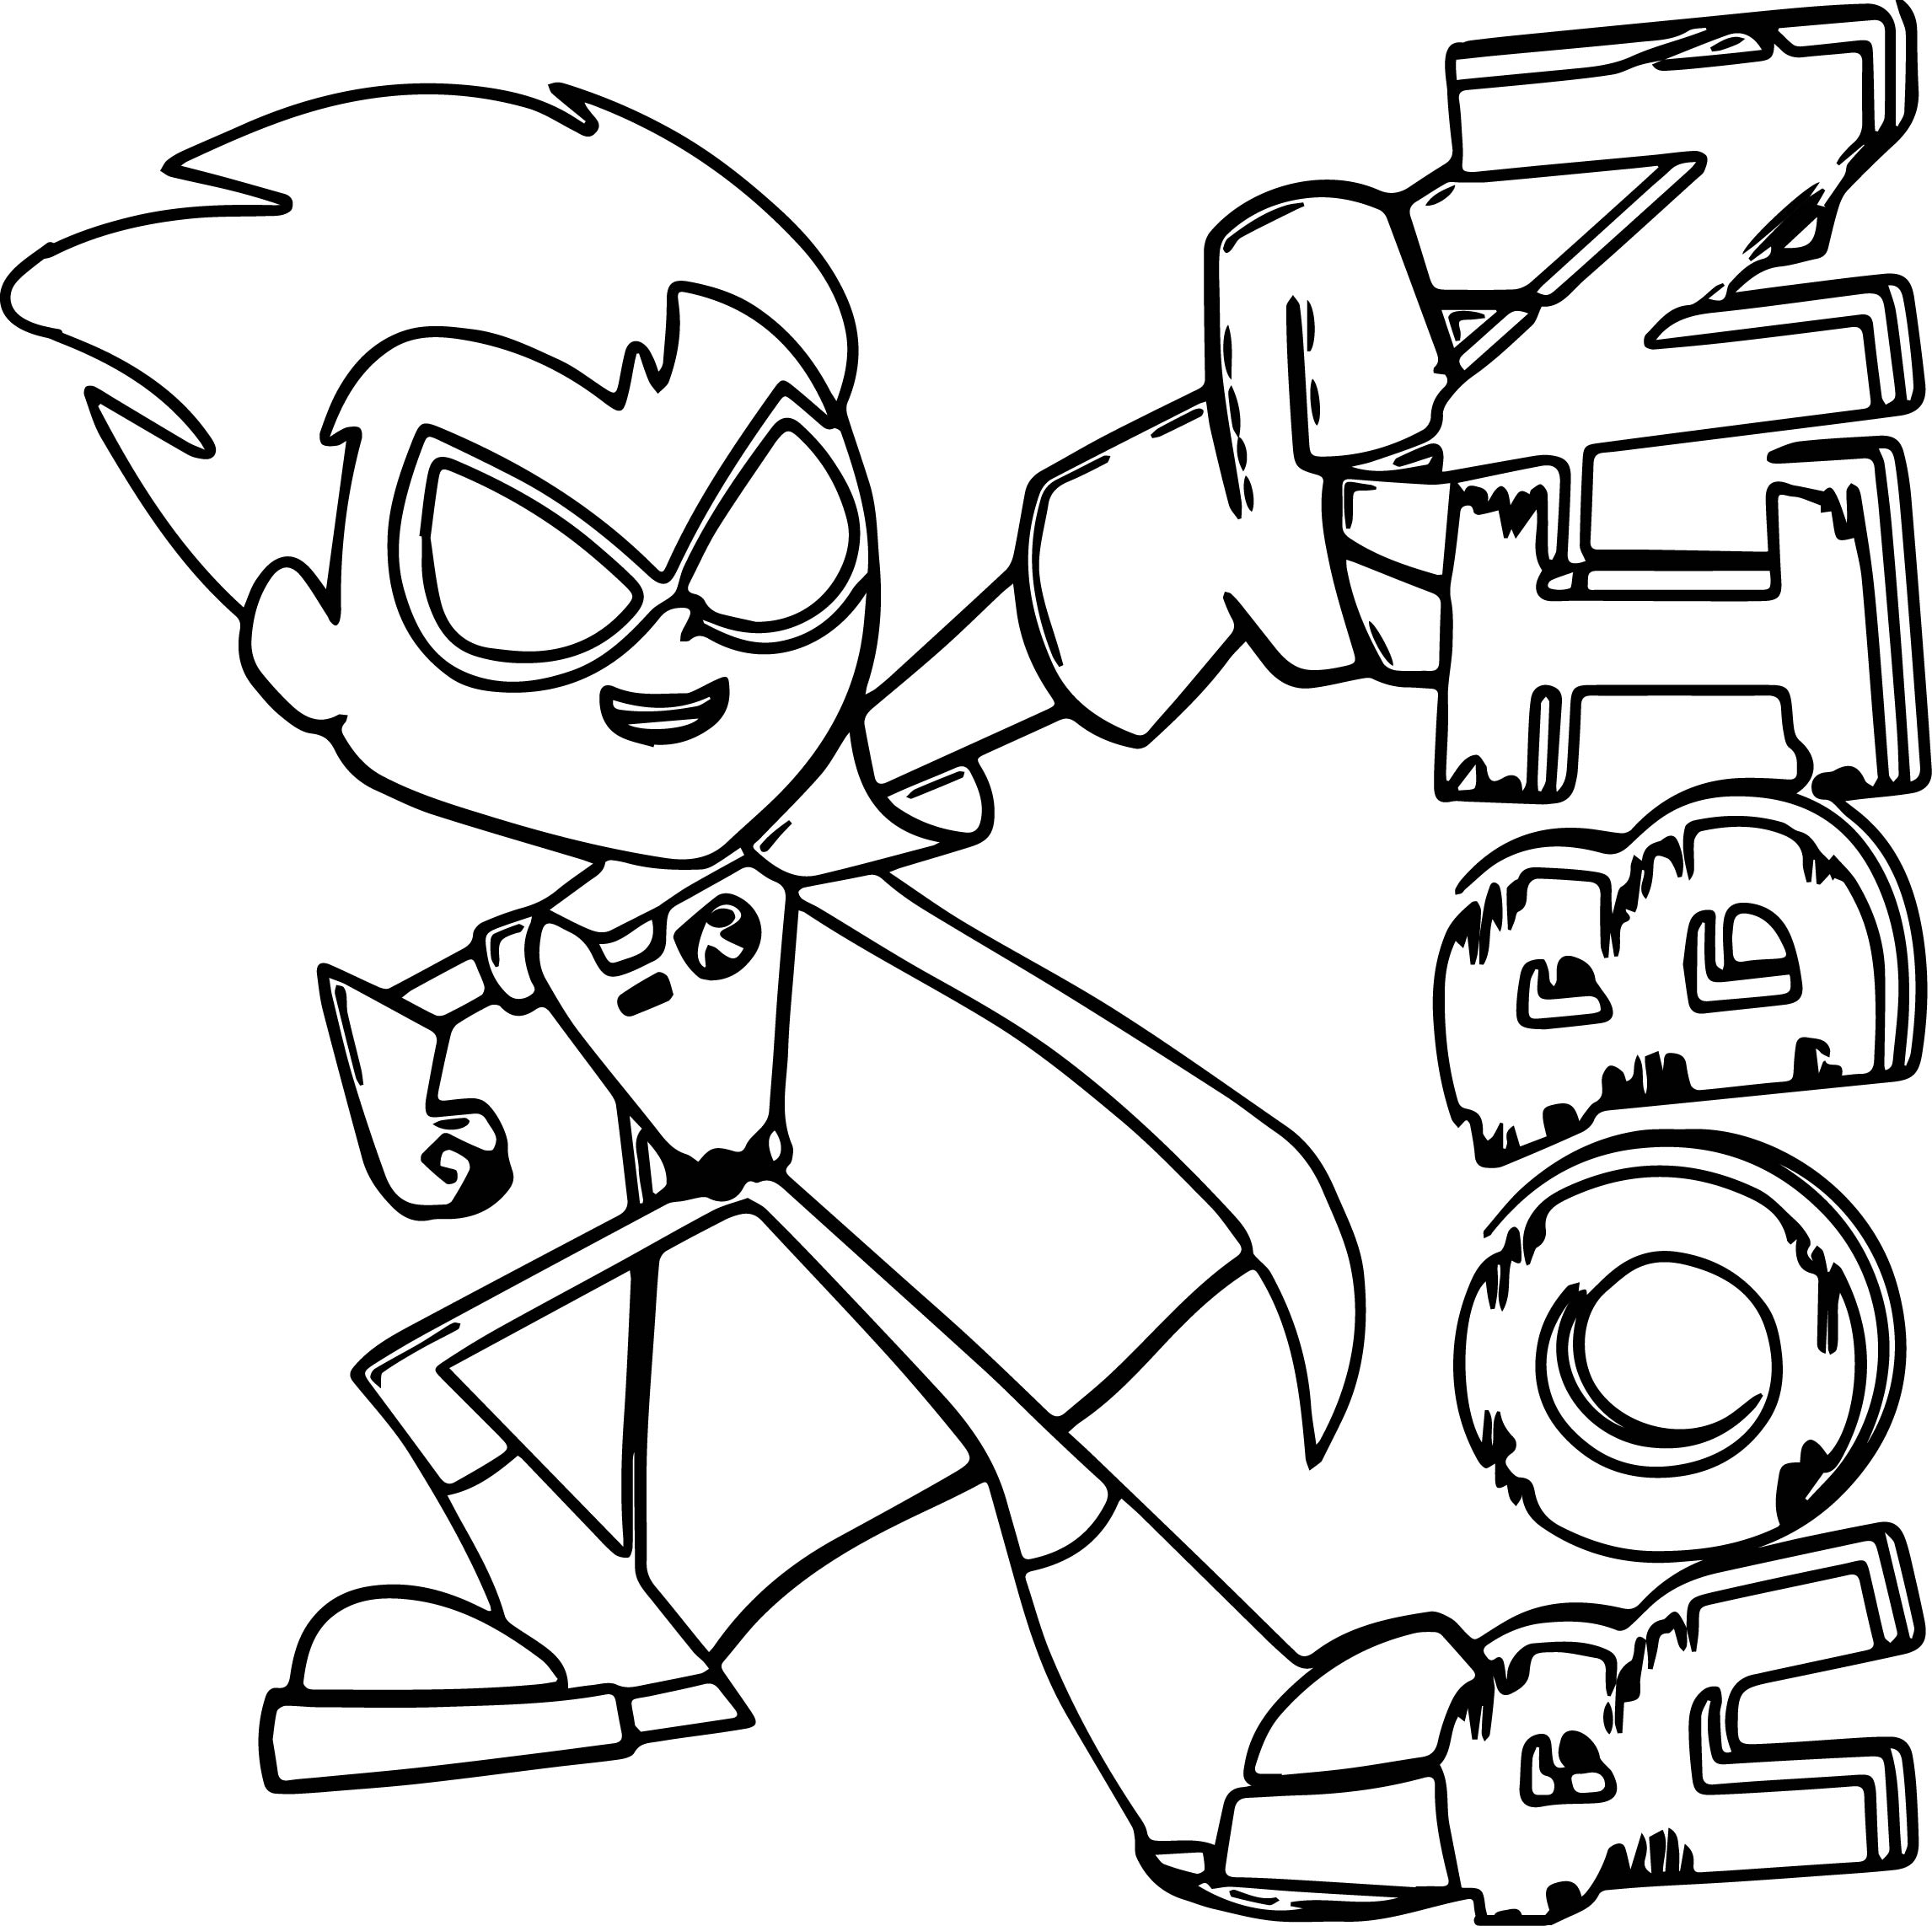 titans coloring pages teen titans coloring pages best coloring pages for kids coloring pages titans